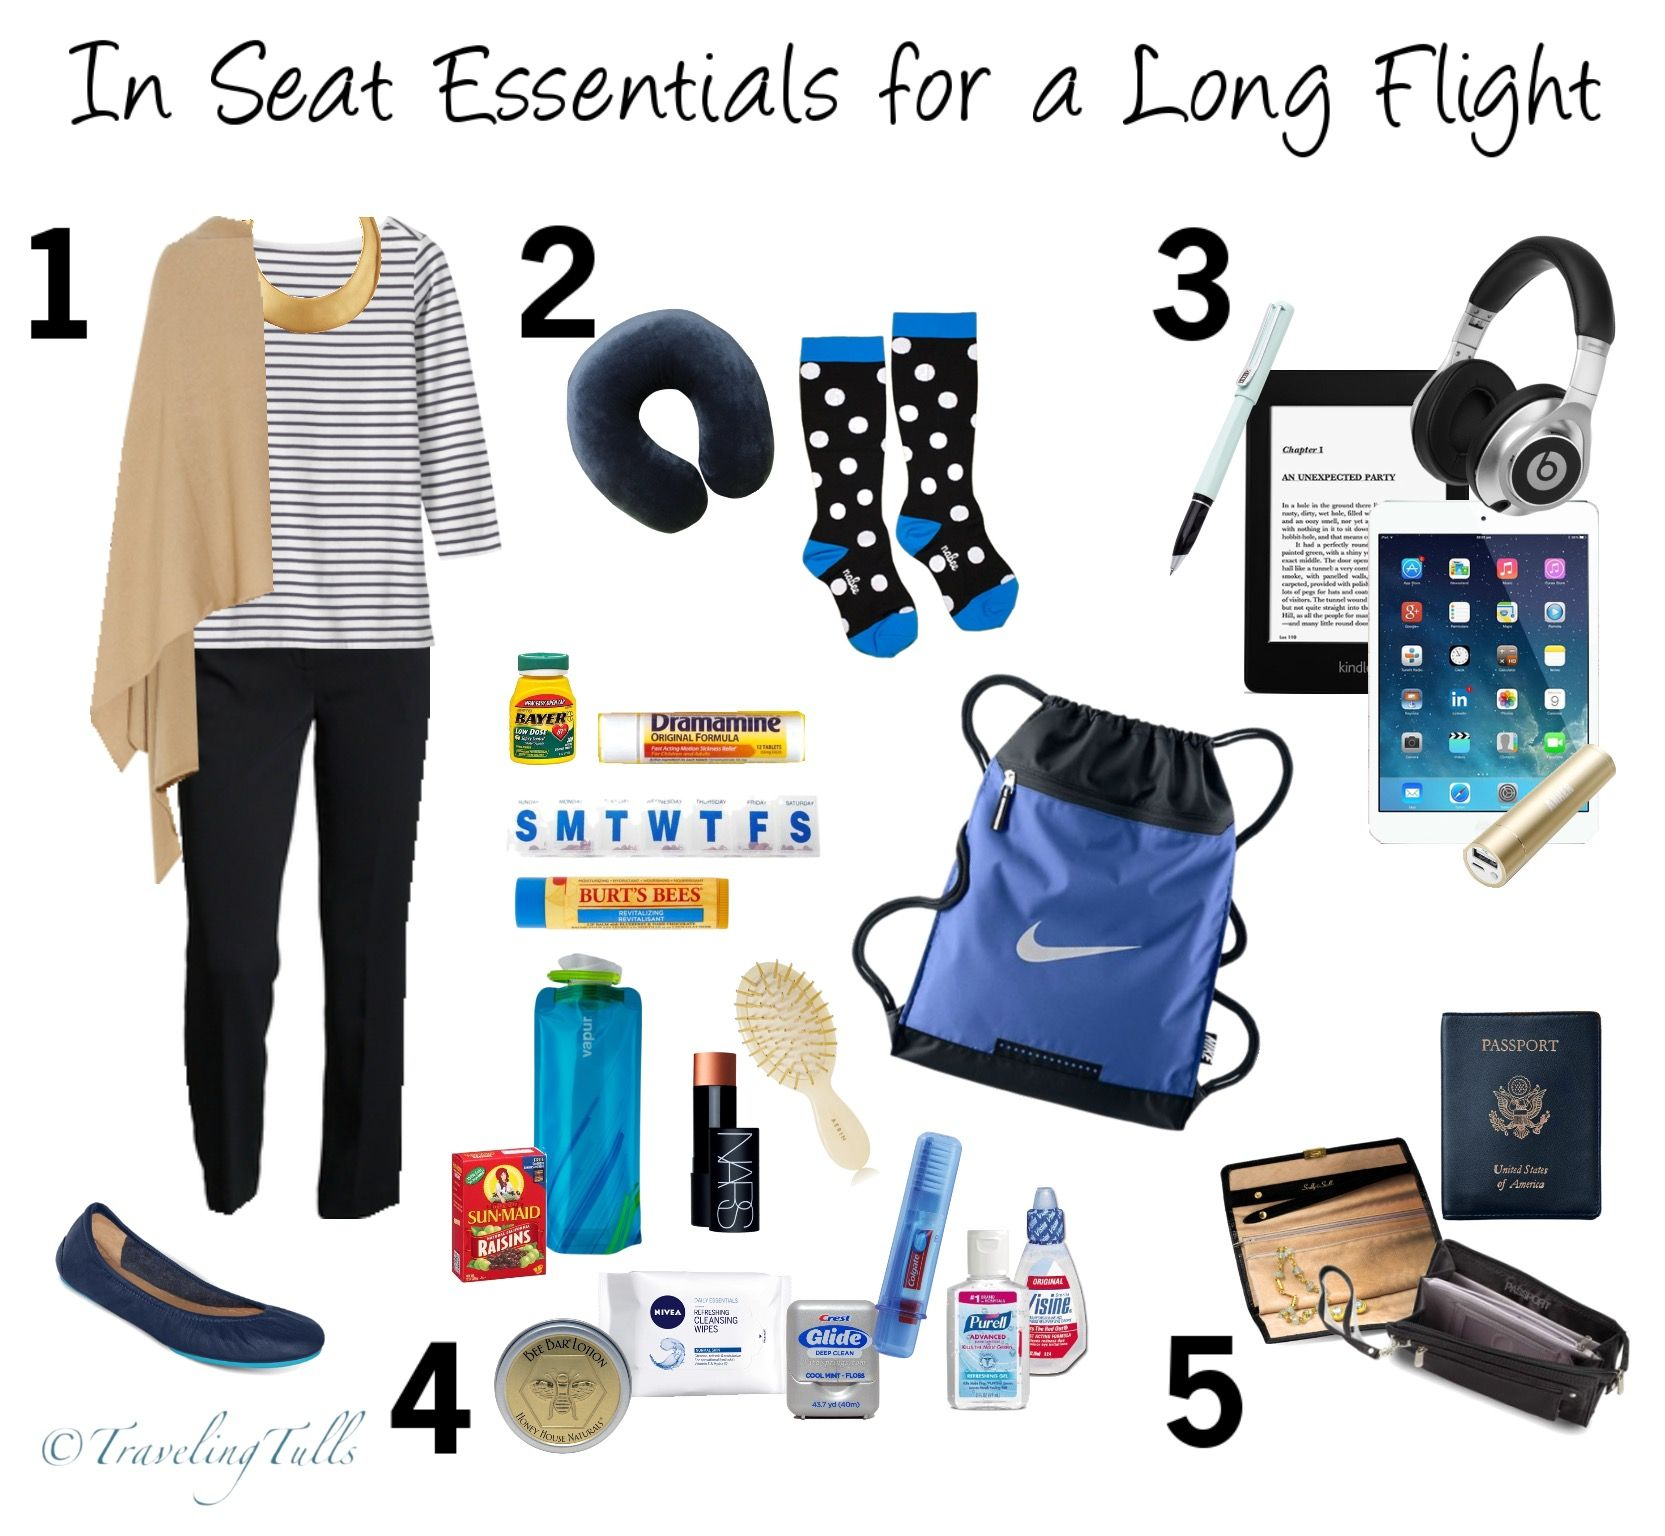 How to Survive Long Flights in Economy | Coach travel, Long flights,  Surviving long flights